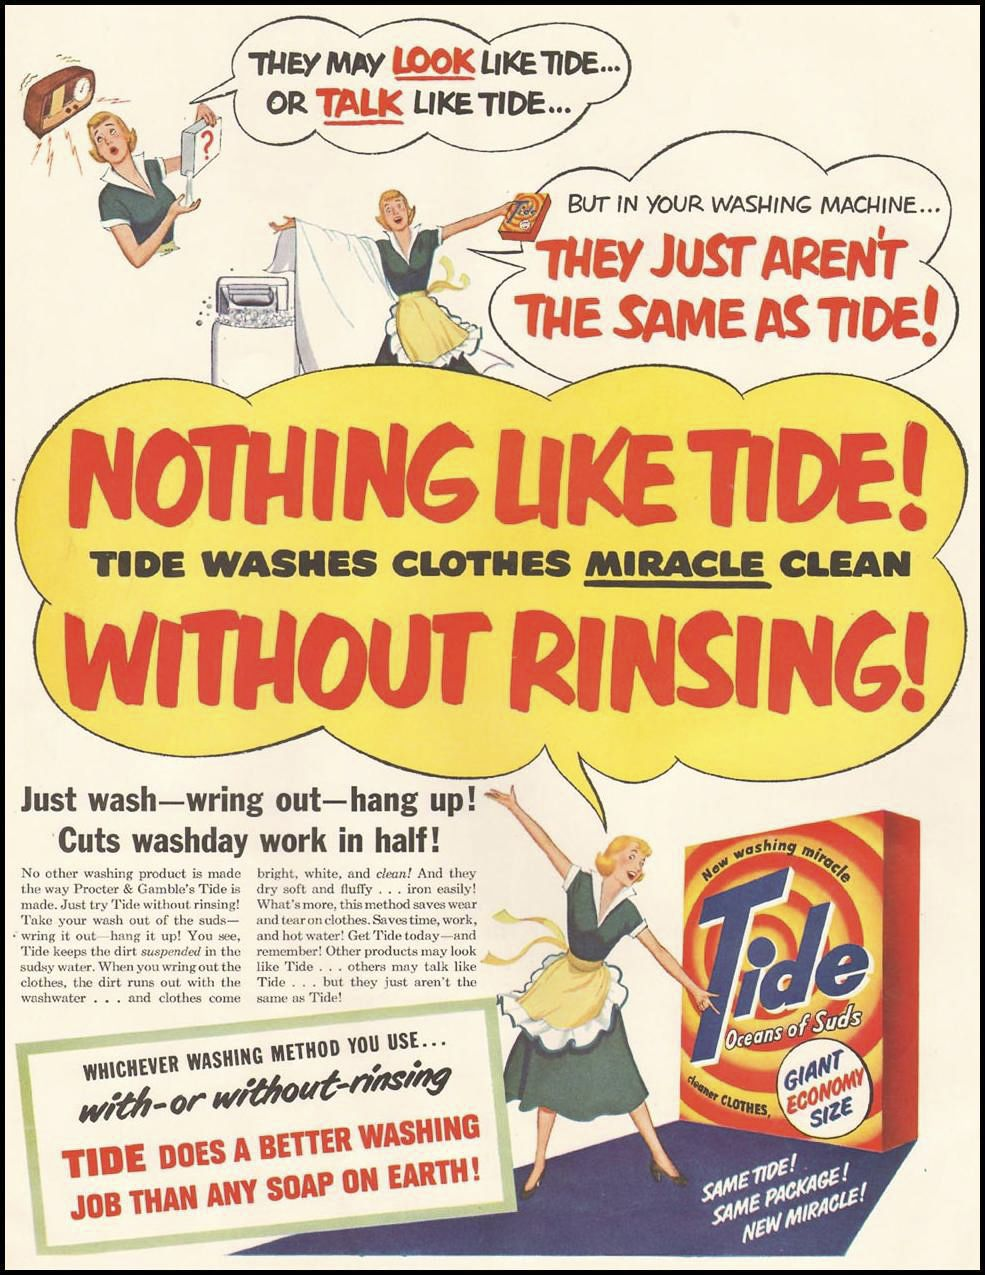 Tide 1950 #retroads #1950s - http://www.retro.red/tide-1950/